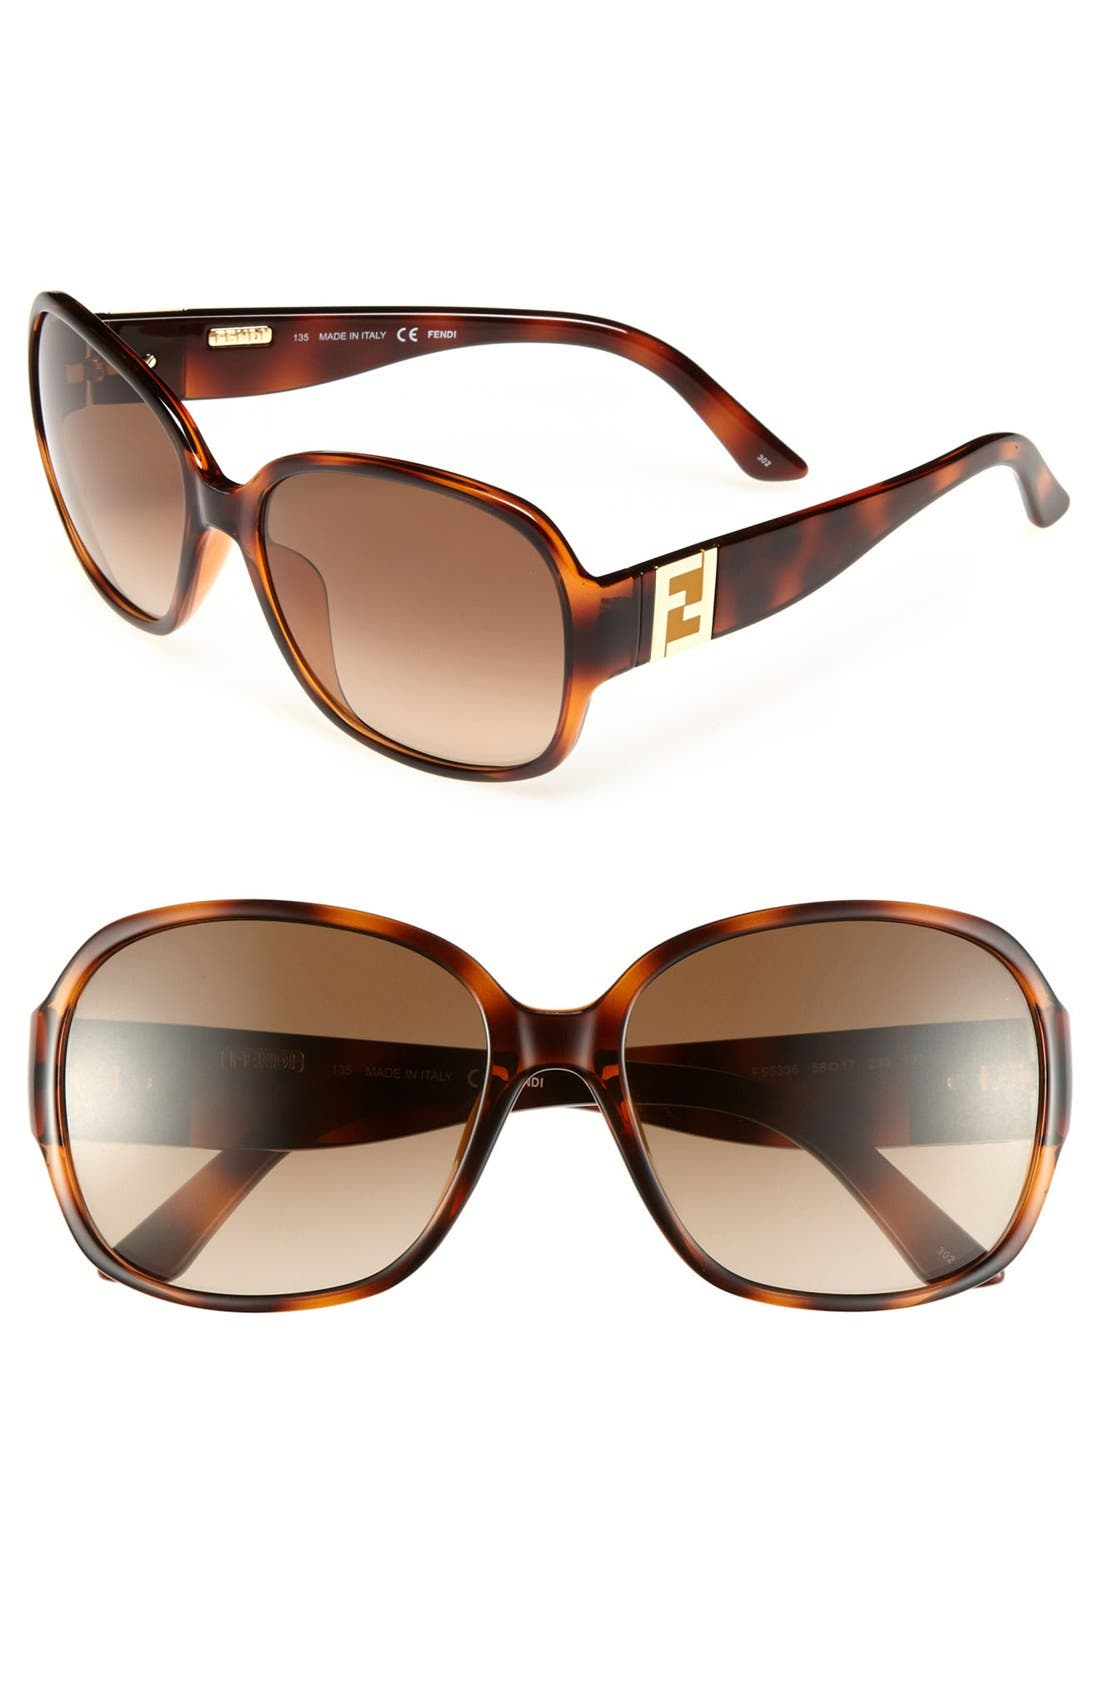 Main Image - Fendi 58mm Sunglasses